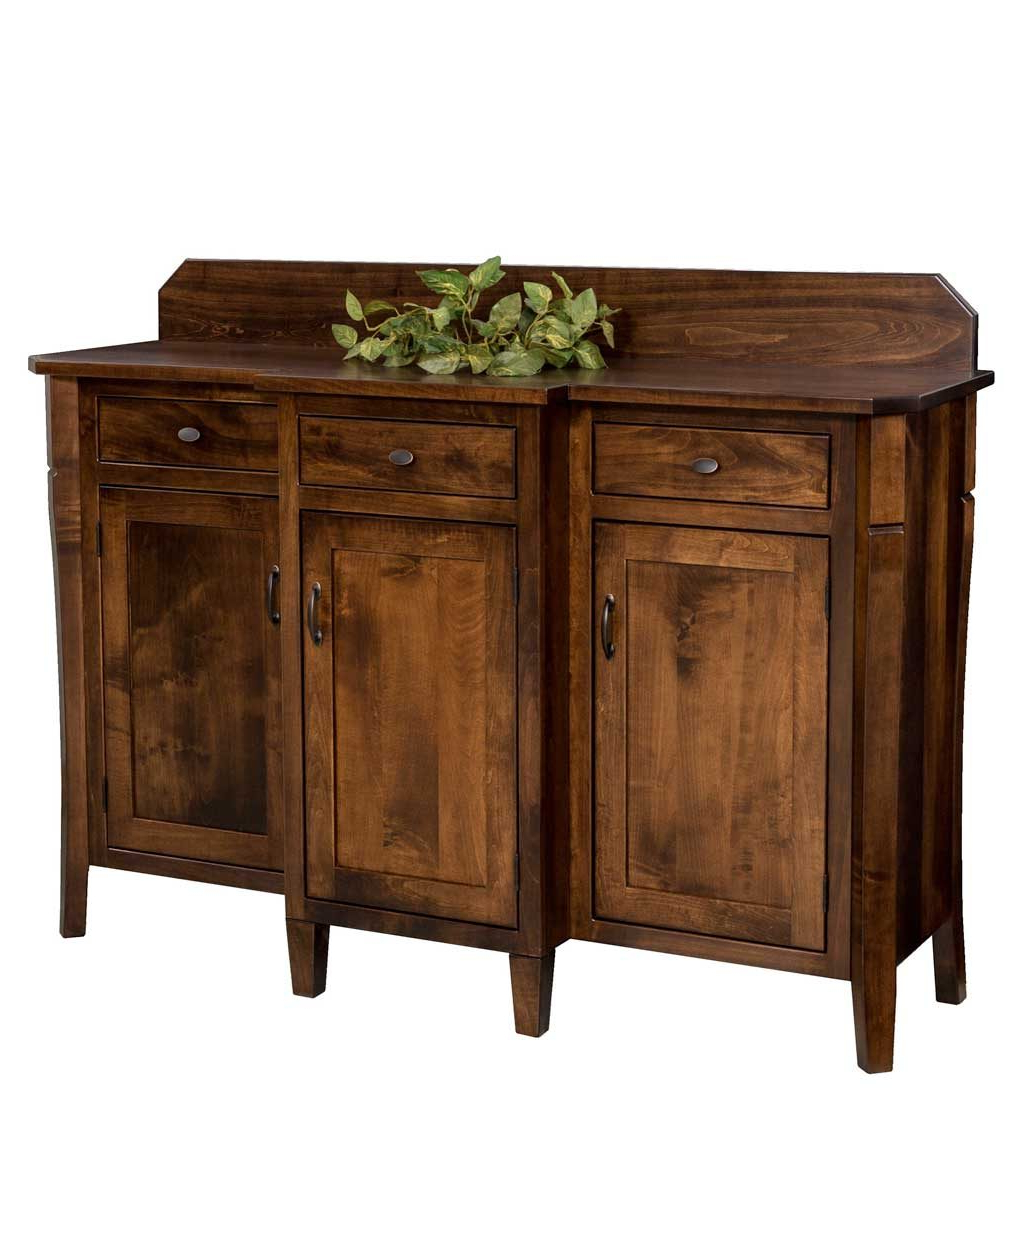 2019 Candice Ii Sideboards In Candice Sideboard – Amish Direct Furniture (Gallery 2 of 20)